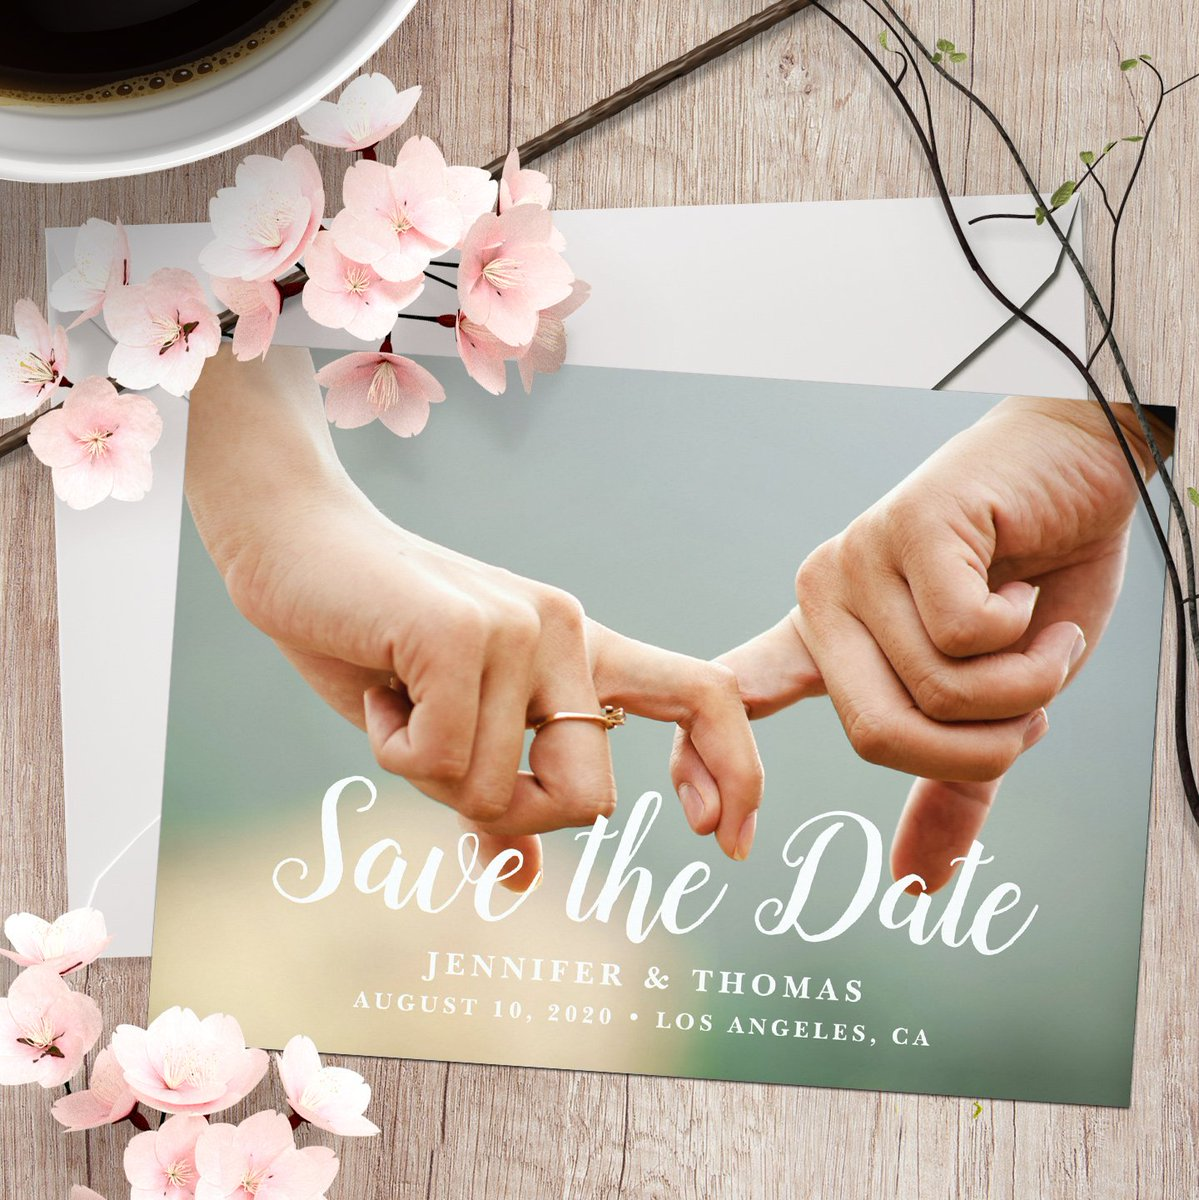 A Beautiful Special Invitation Card. Free Save the Date Save the date photocards